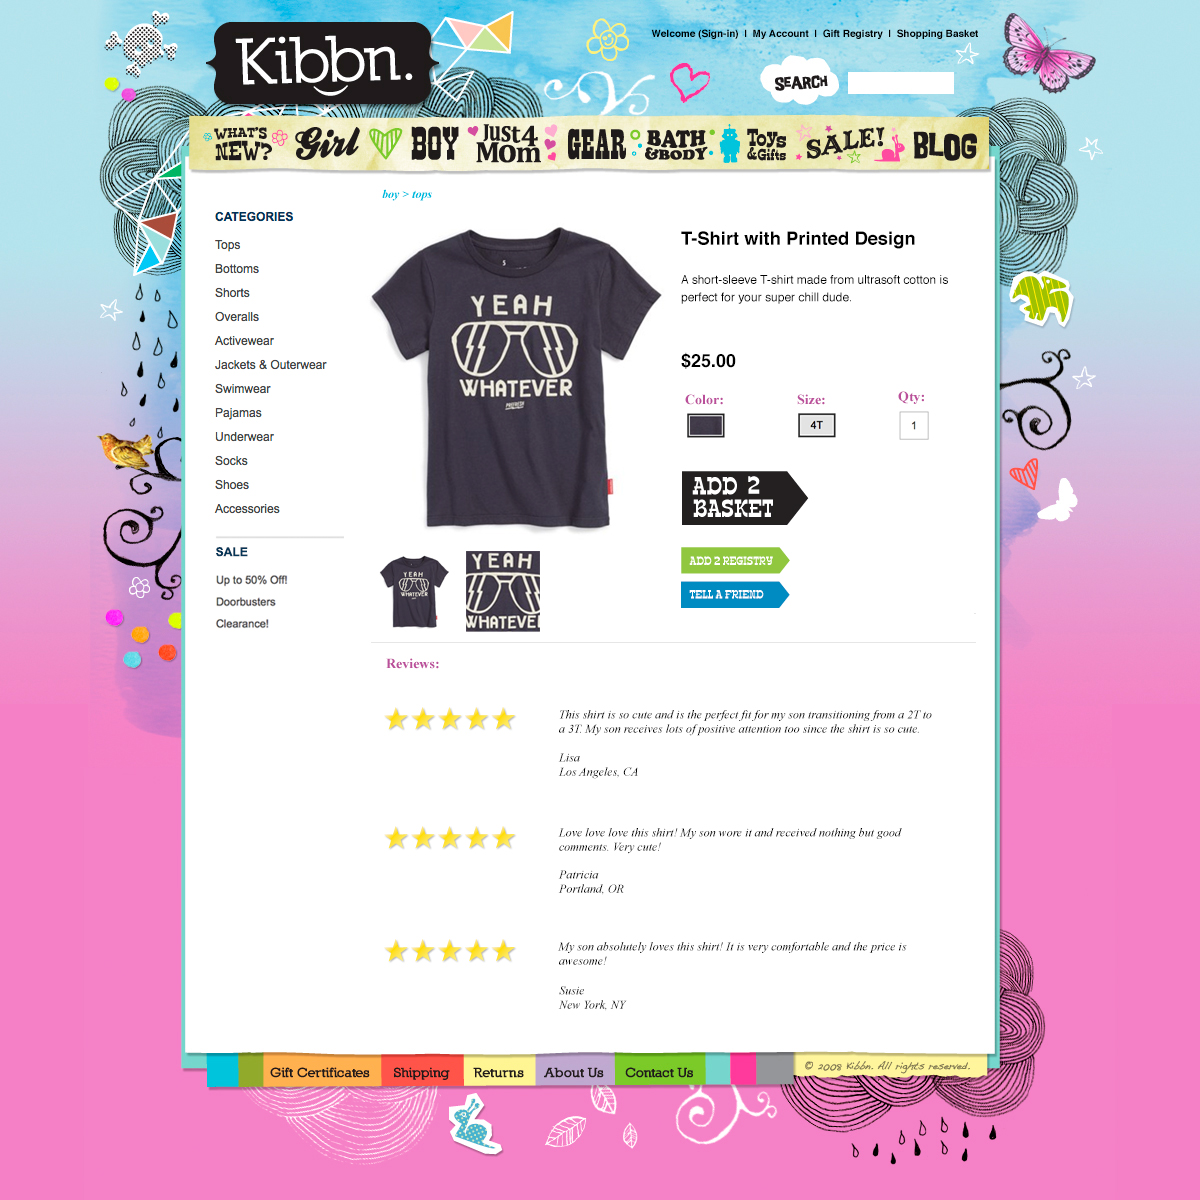 Kibbn website